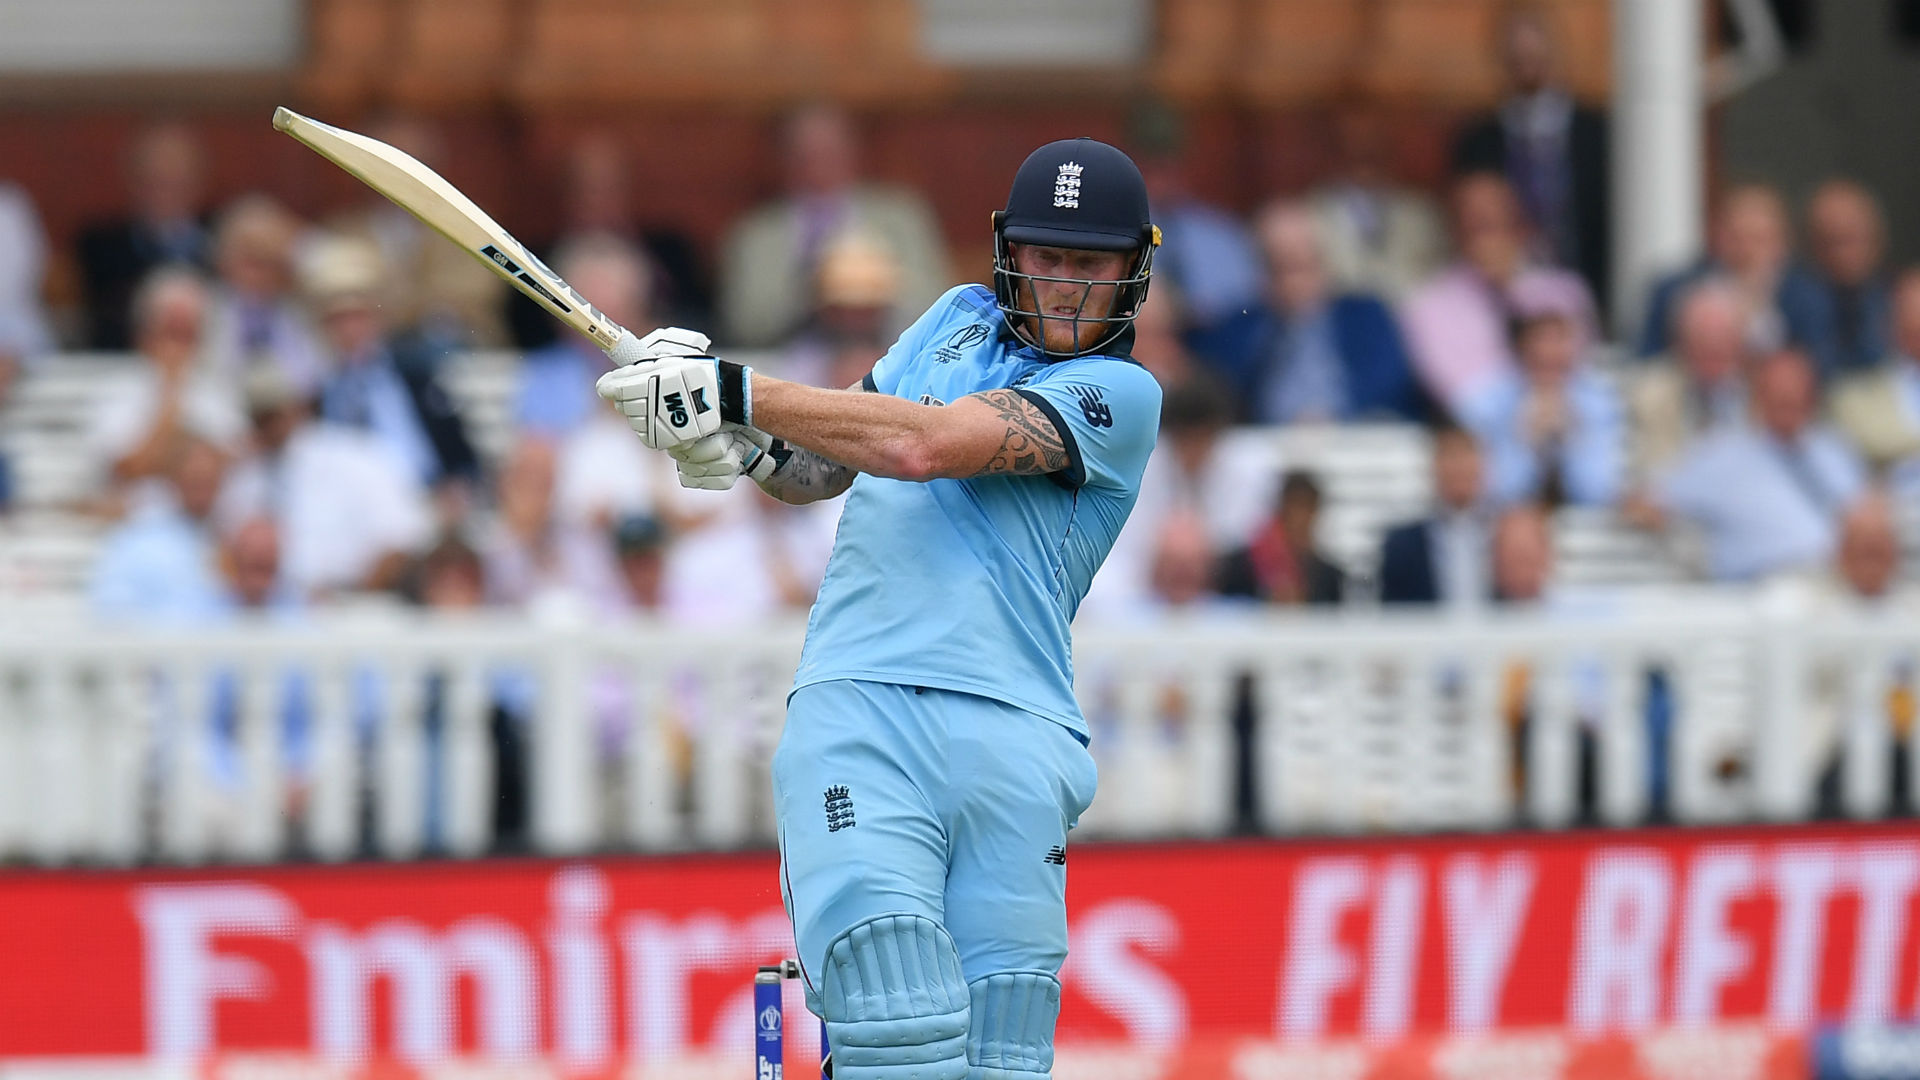 England's openers have been in outstanding form at the Cricket World Cup but Brad Hogg thinks Ben Stokes will stand up in the decider.